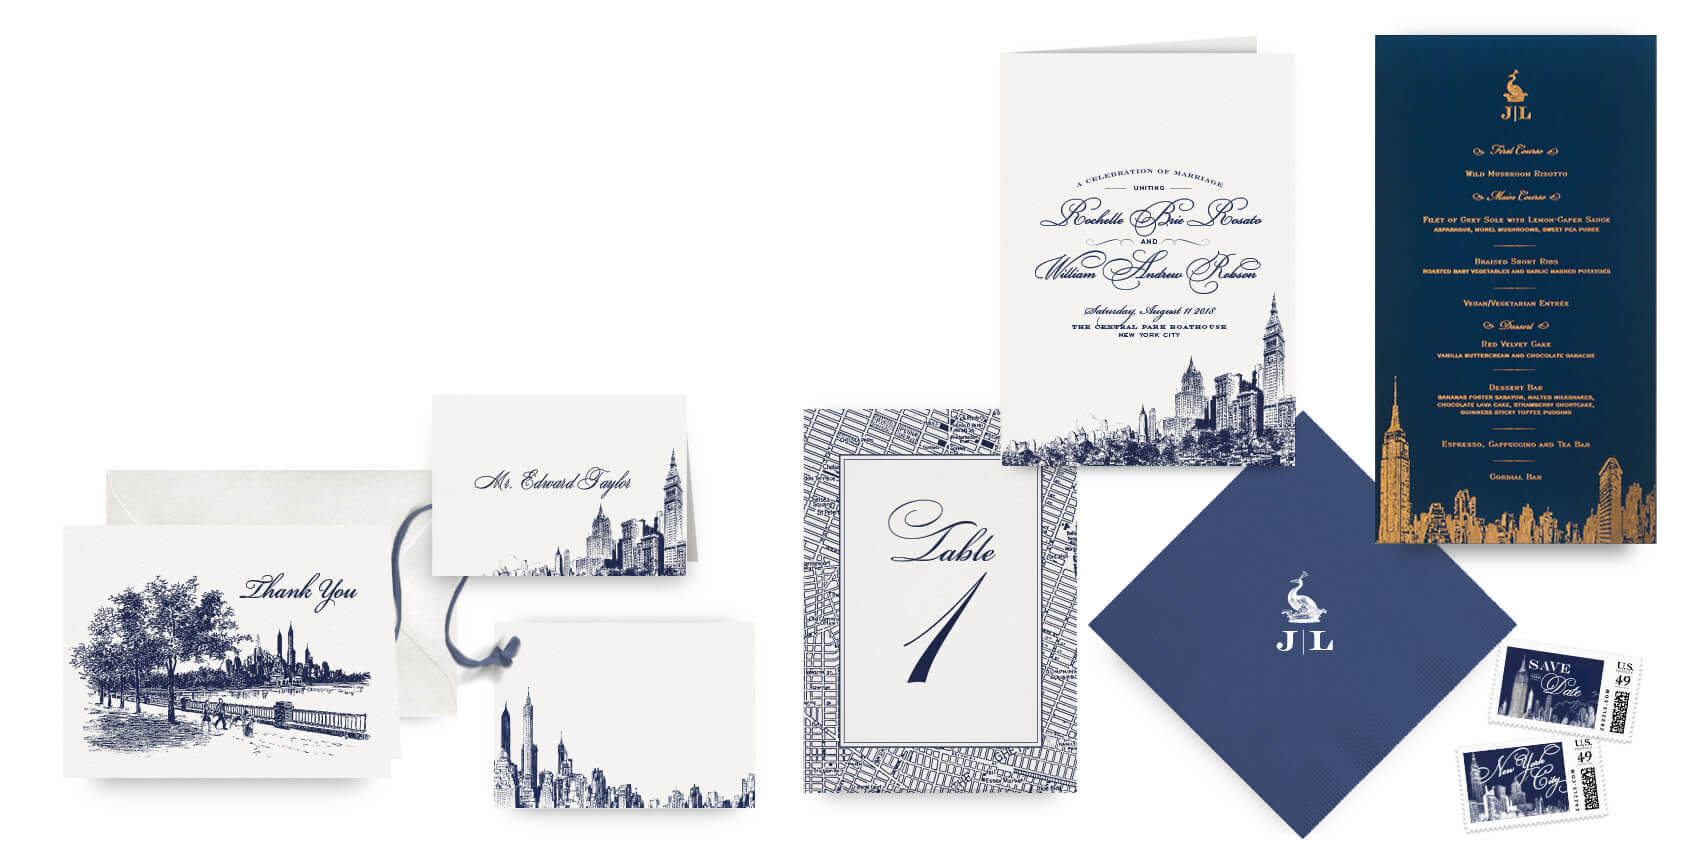 New York City menus, programs and wedding accessories